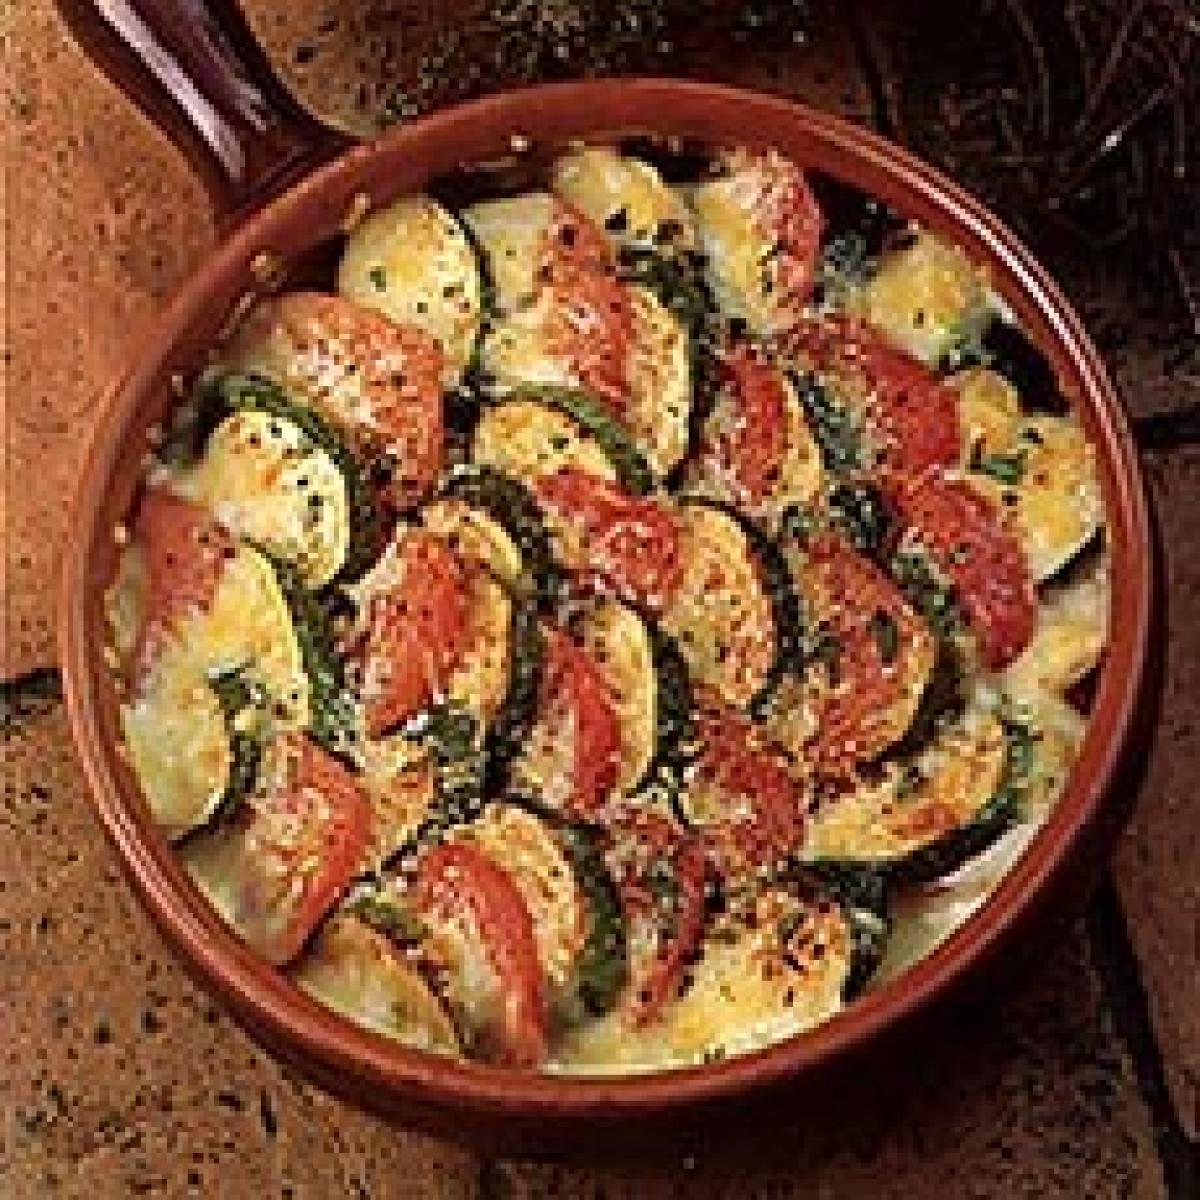 A picture of Delia's Courgettes and Tomatoes au Gratin recipe